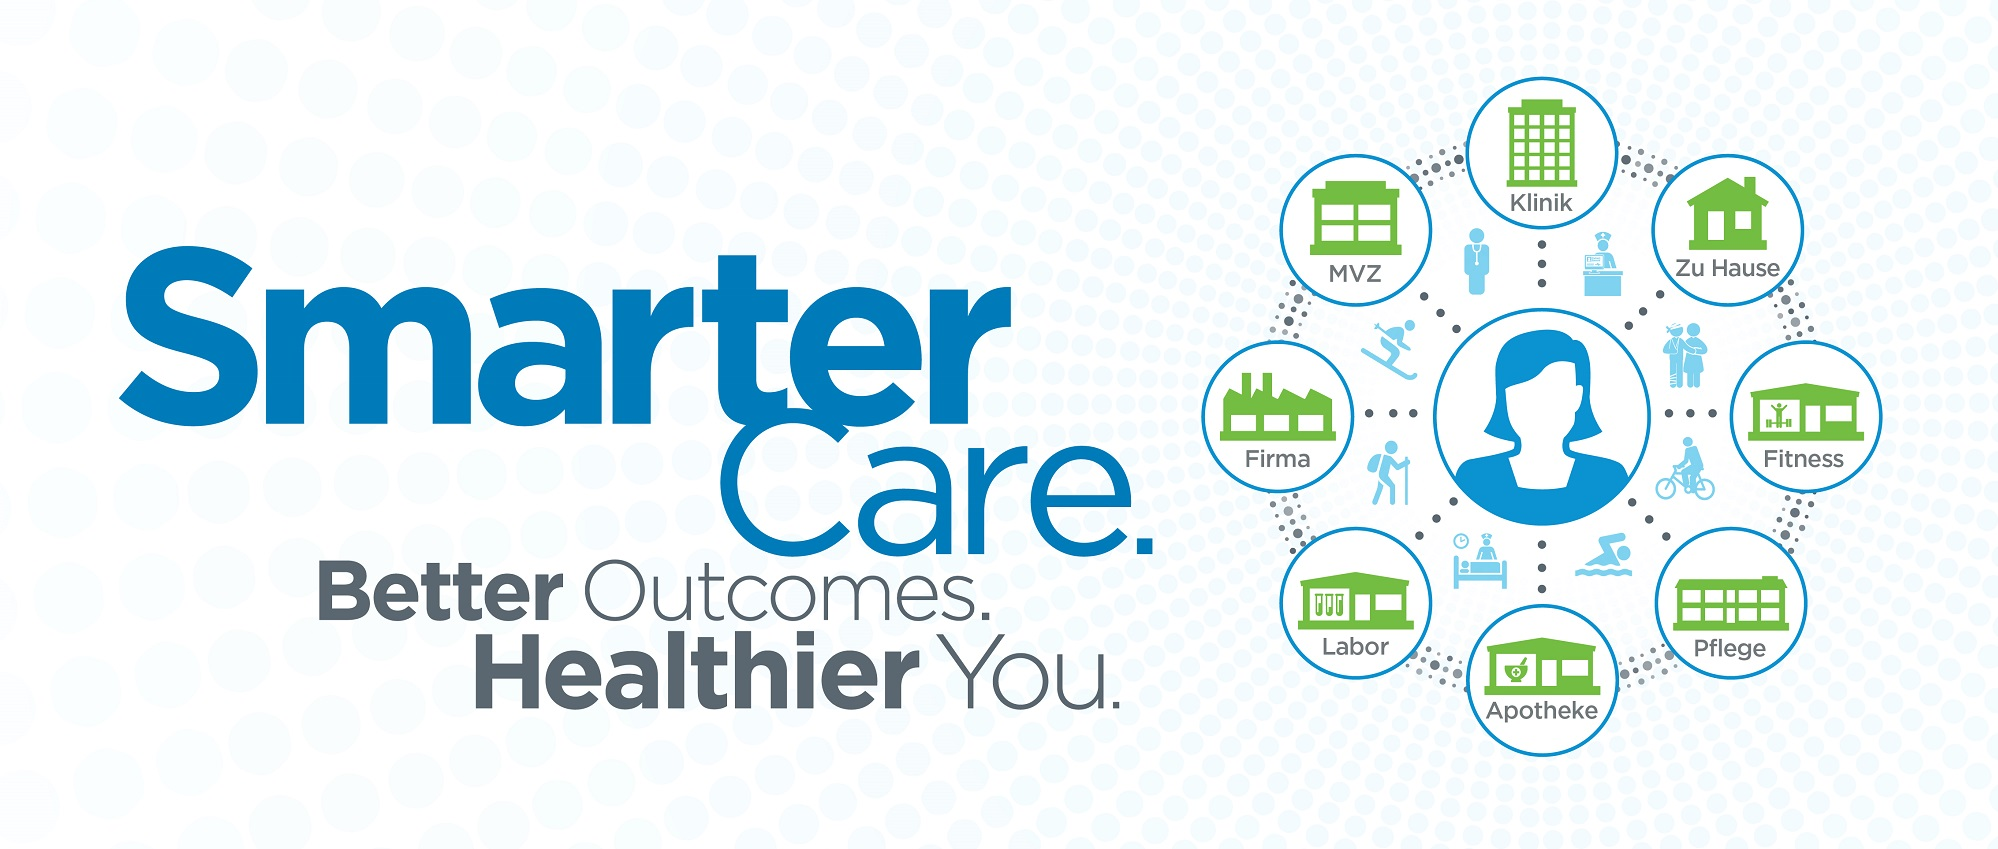 Smarter Care. Better Outcomes. Healthier You.